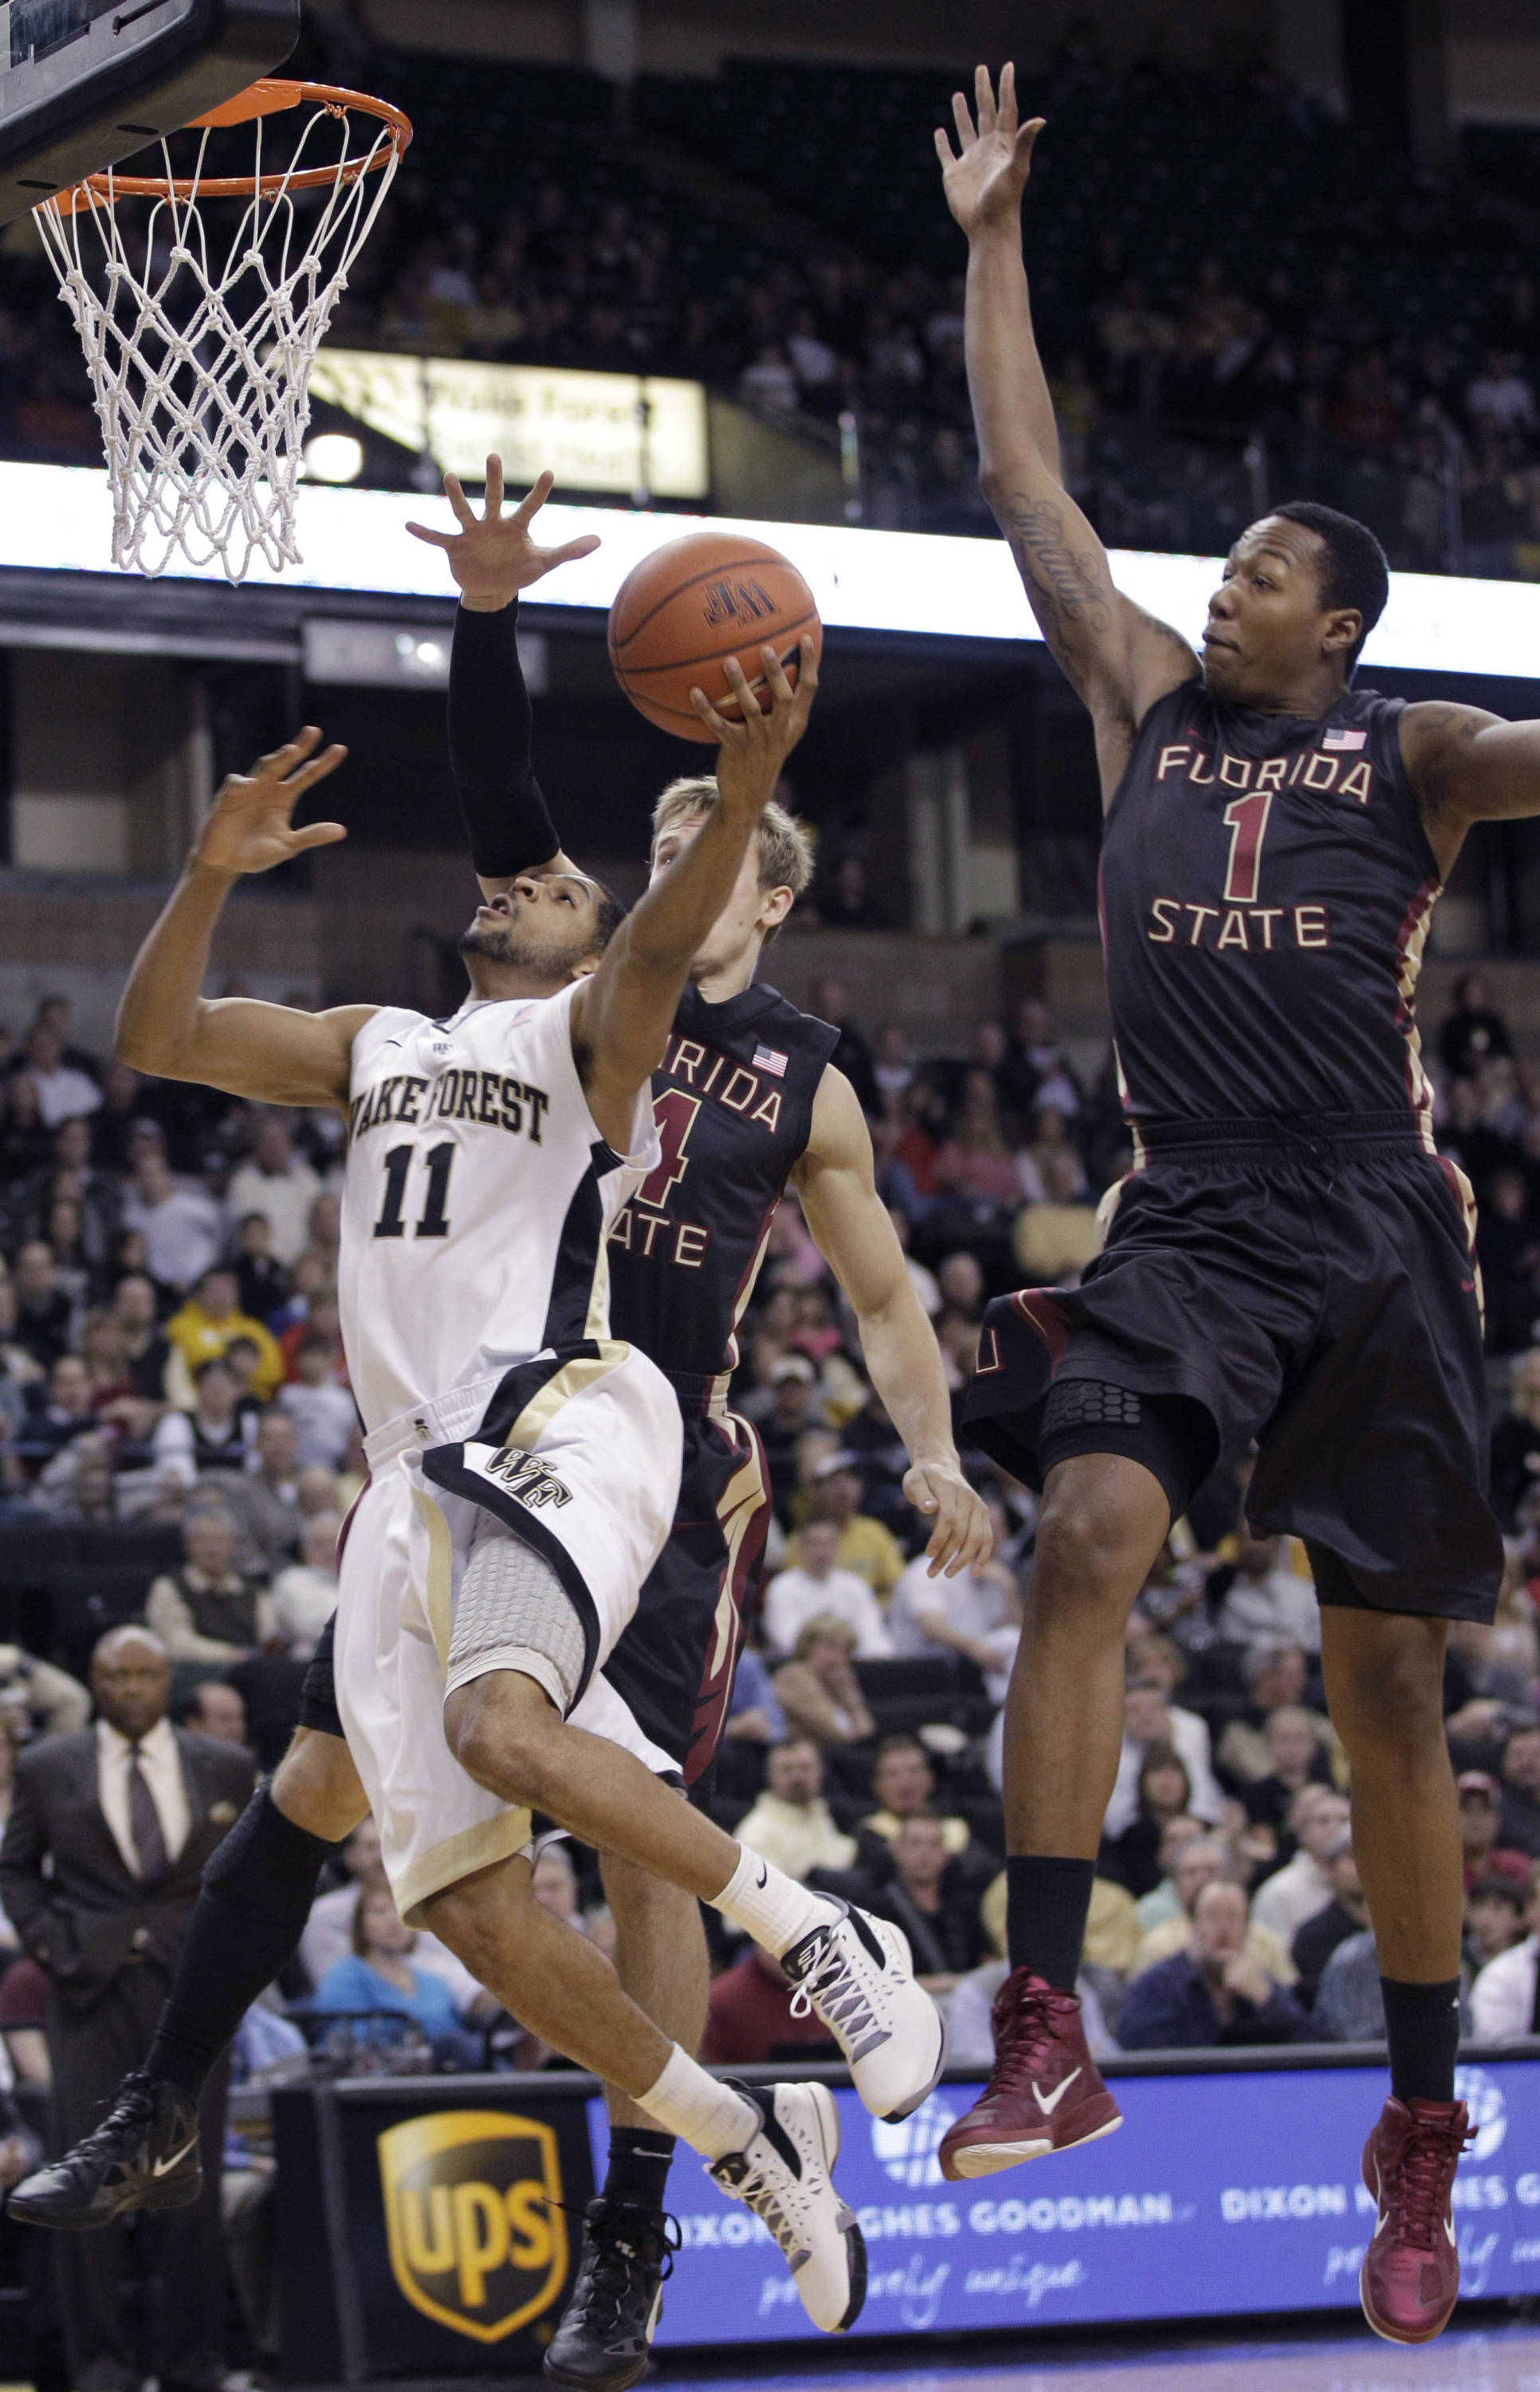 Wake Forest's C.J. Harris (11) drives past Florida State's Xavier Gibson and Deividas Dulkys. (AP Photo/Chuck Burton)